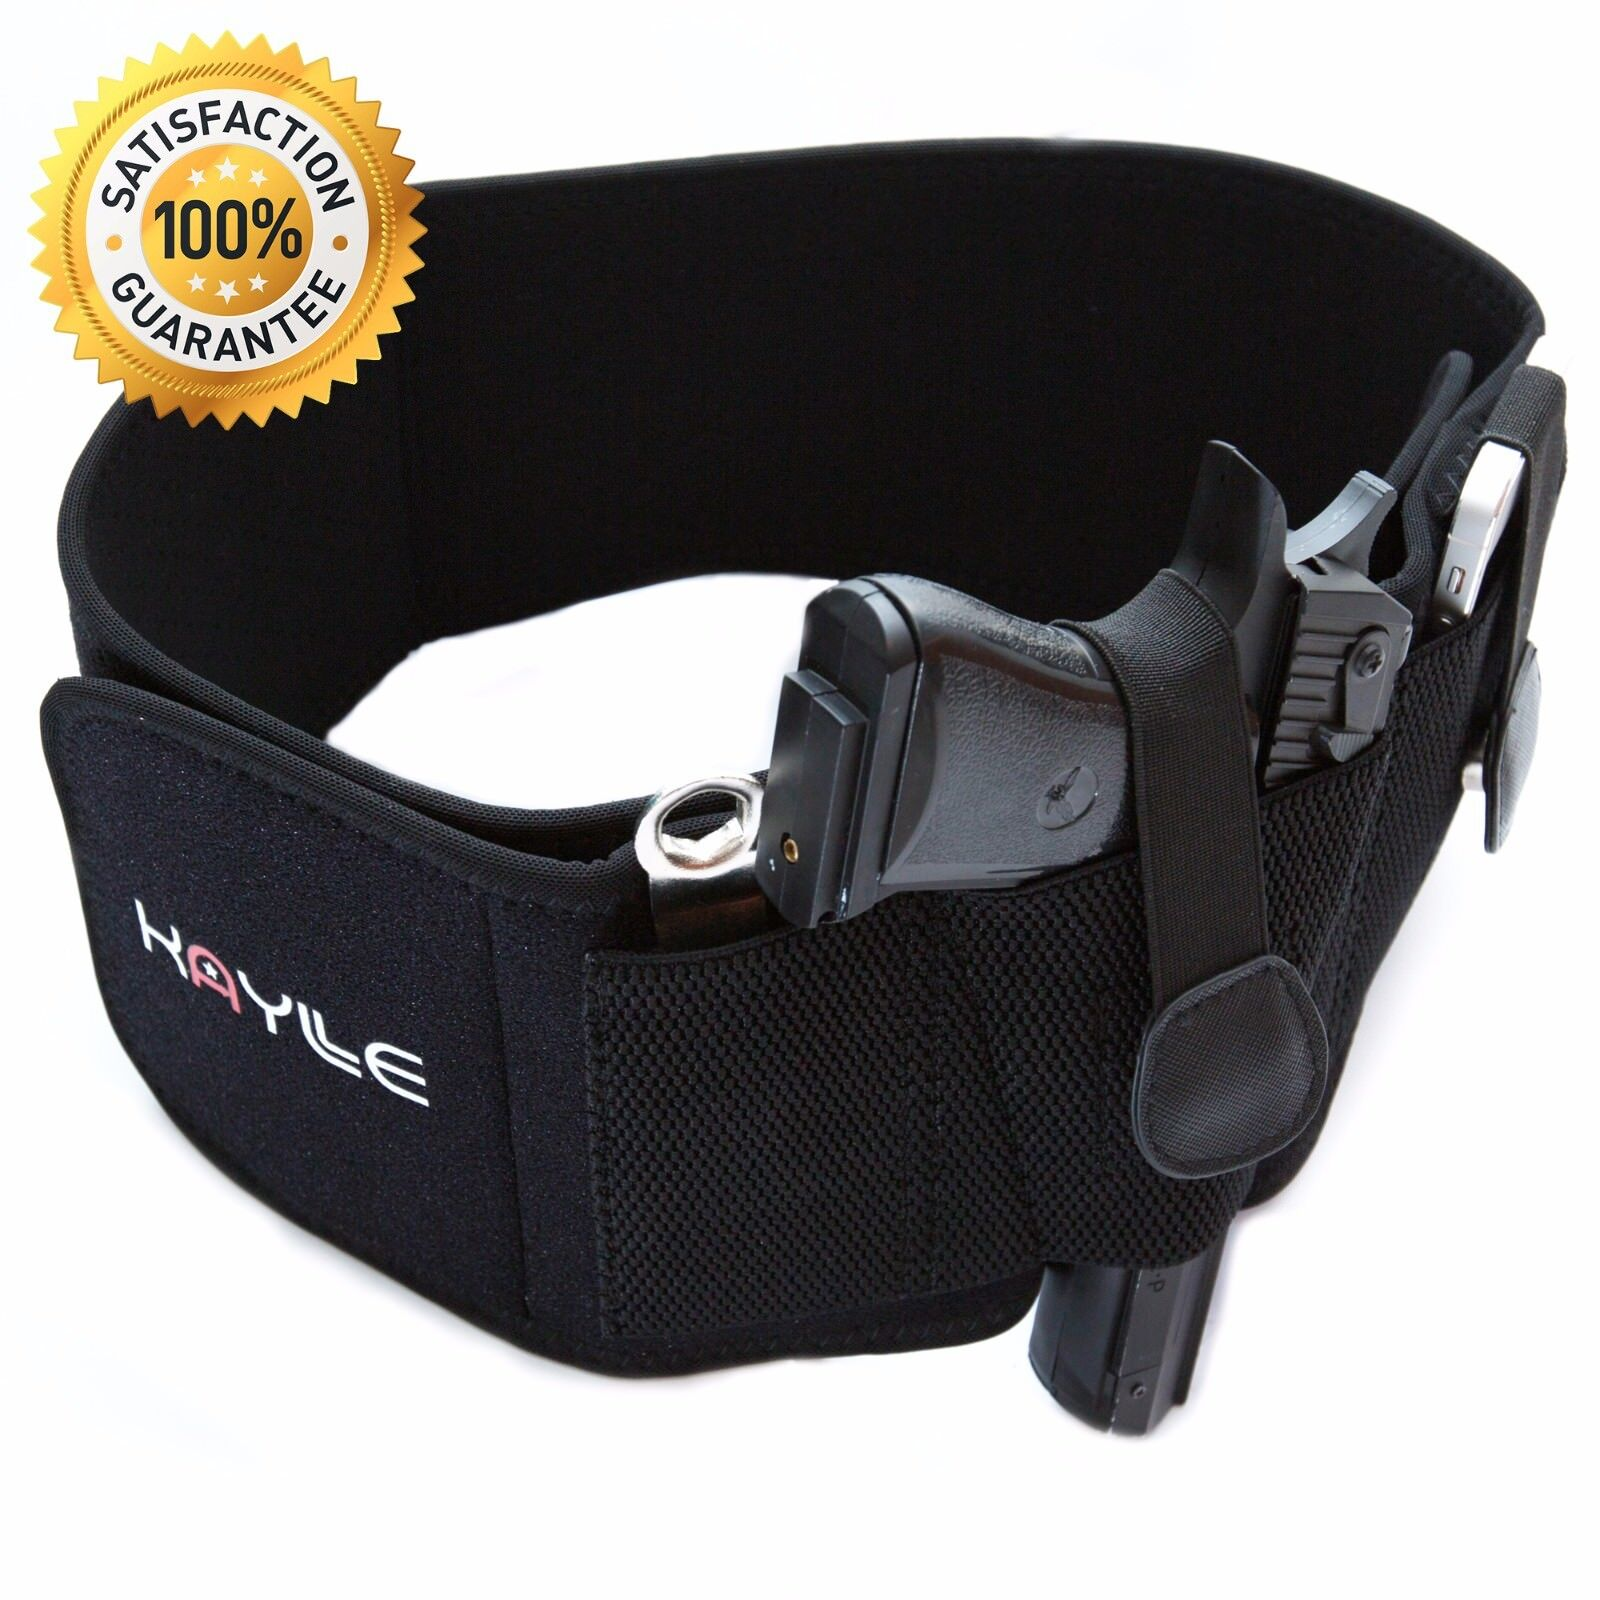 Kaylle Belly Band Holster for Concealed Carry - Neoprene Holster for Men & Women